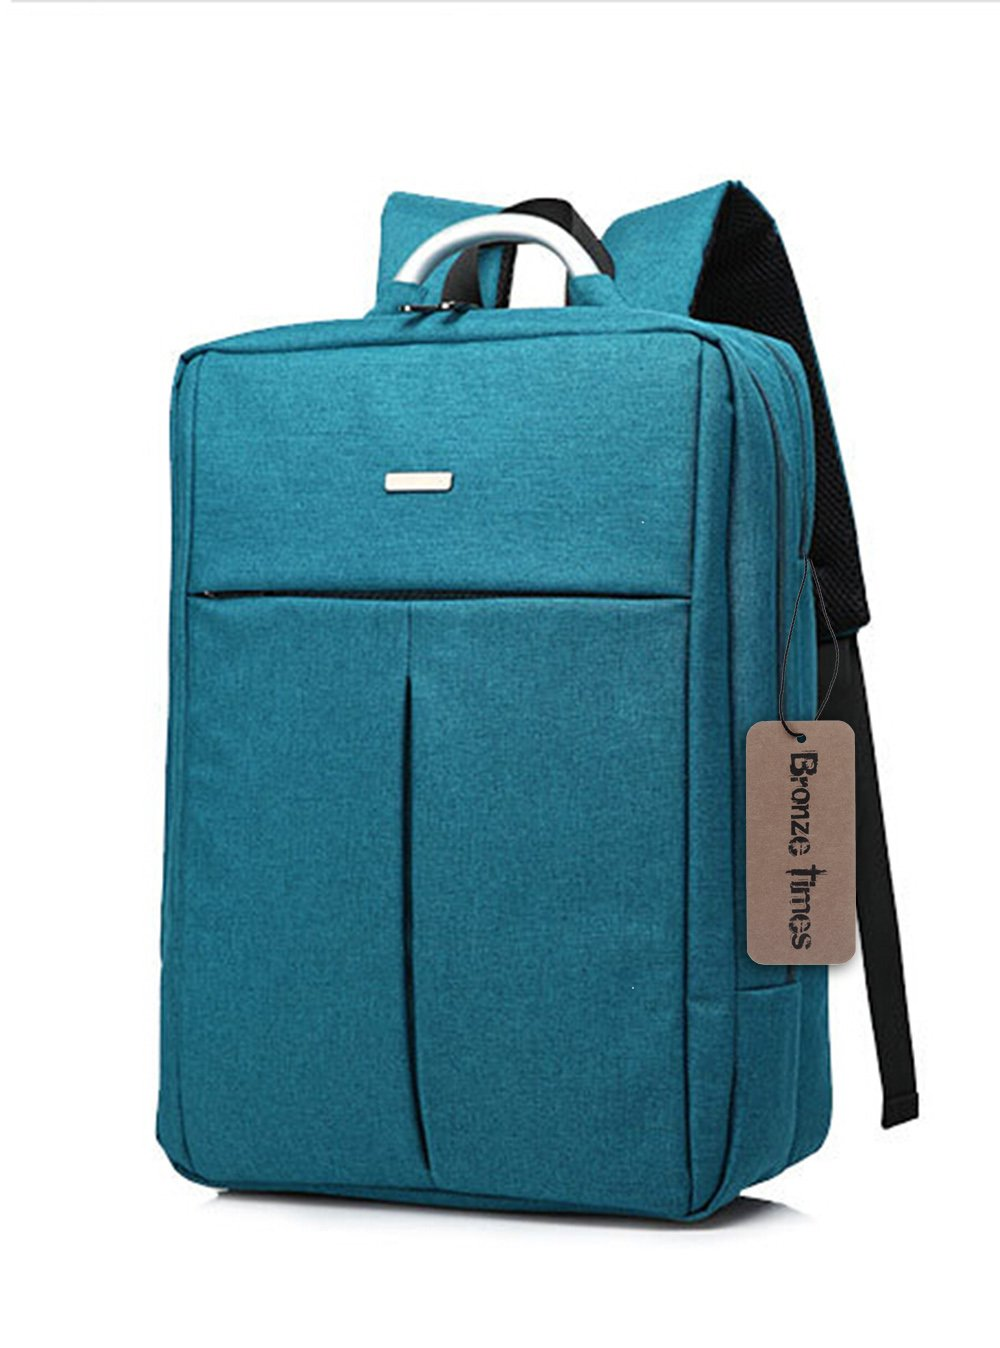 Bronze Times (TM) Unisex 14 inch T-shape Top Canvas Busniess Travel Computer Backpack (B-Blue)